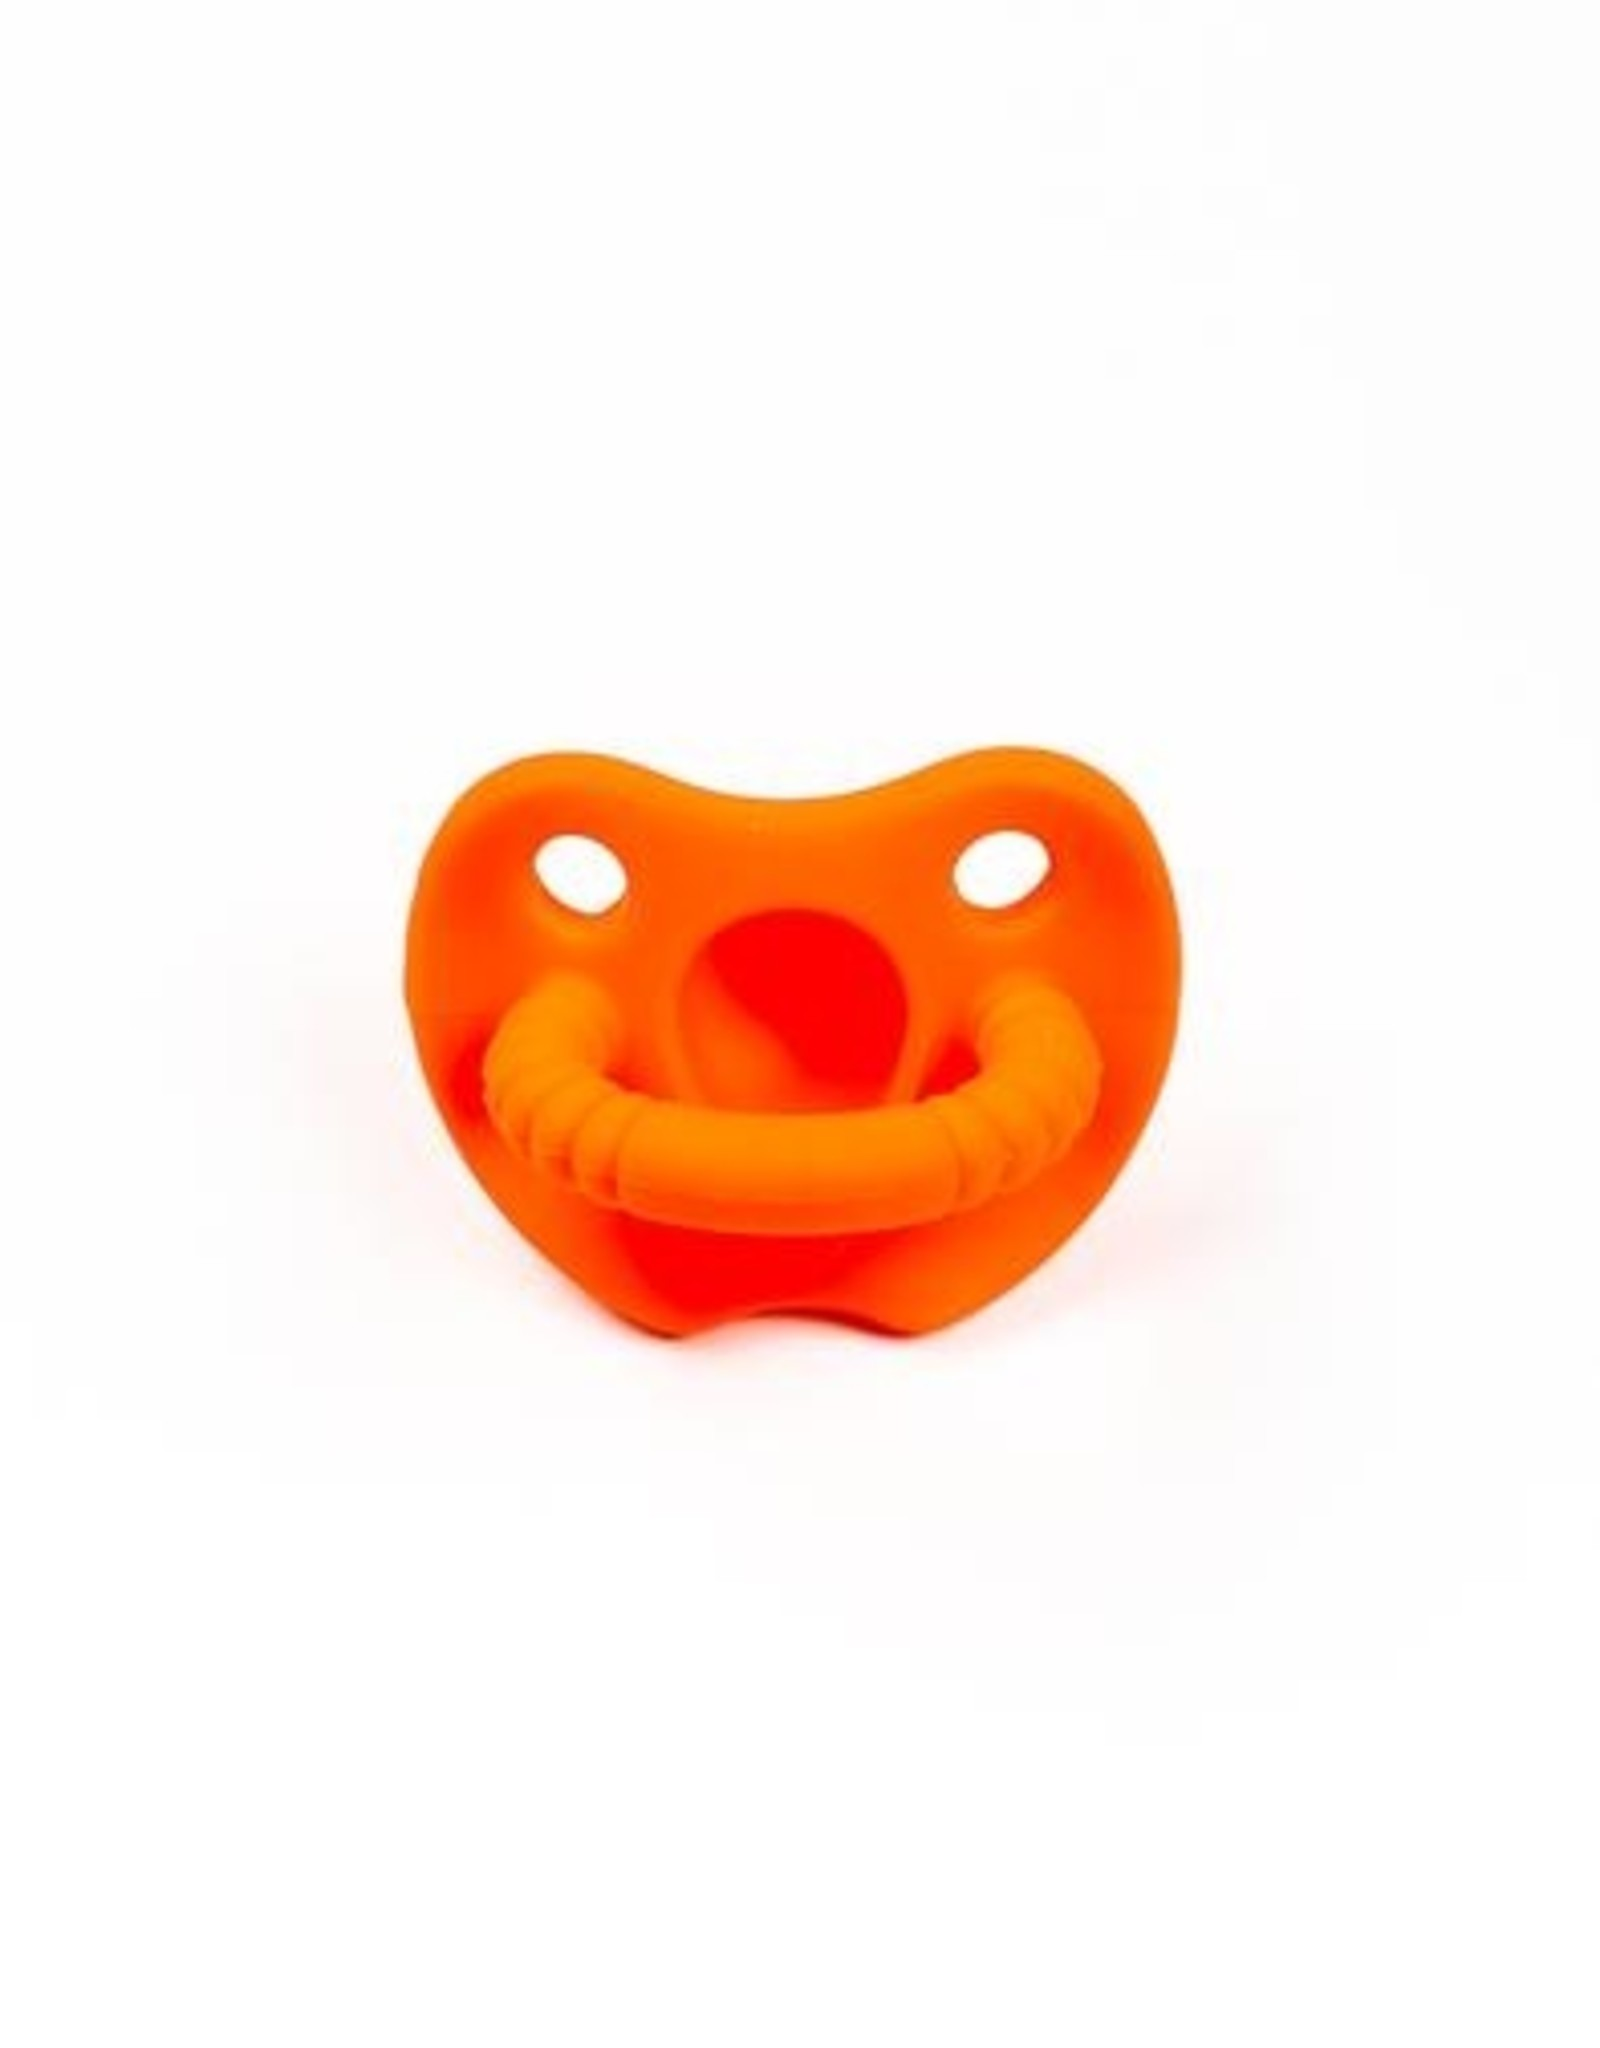 Three Hearts Silicone Soothers (1 ROUND PACIFIER)